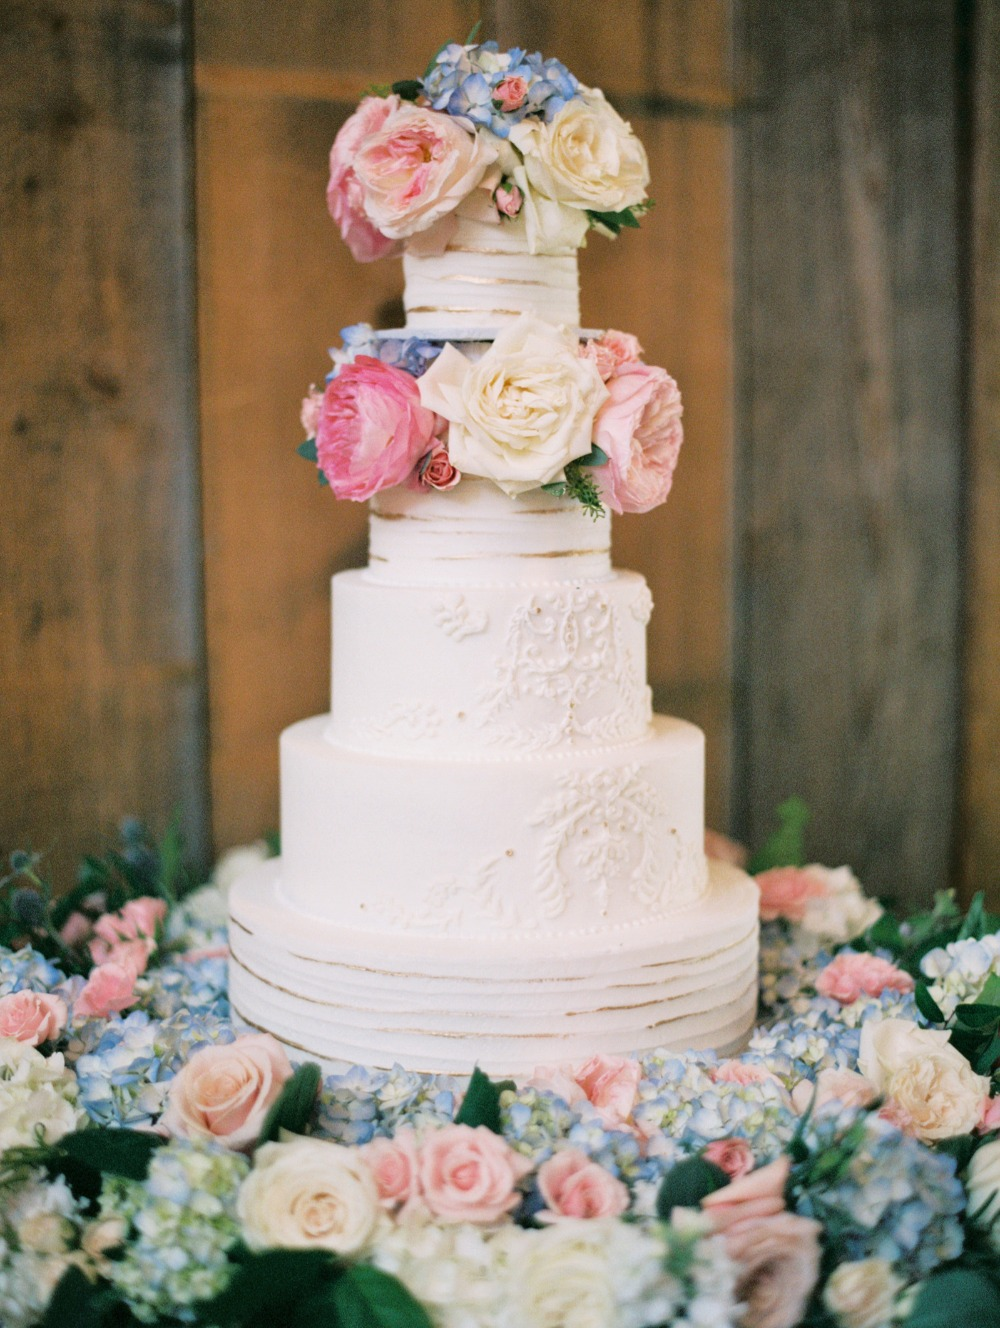 White and gold wedding cake with florals